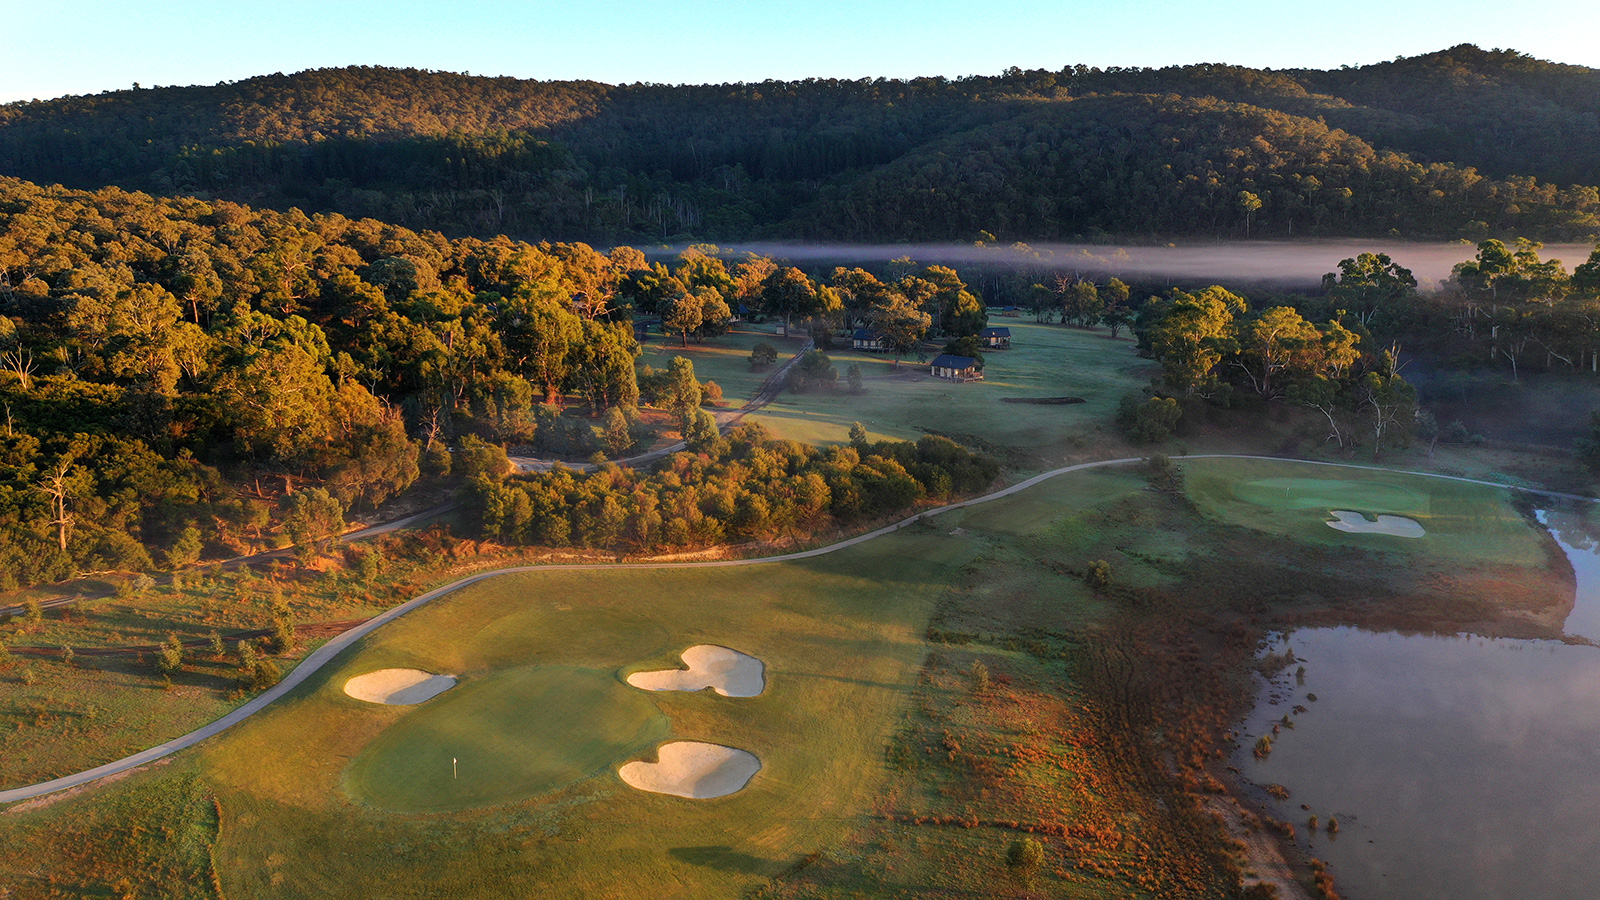 Stay & Play - The Eastern Golf Club & Yering Gorge Cottages